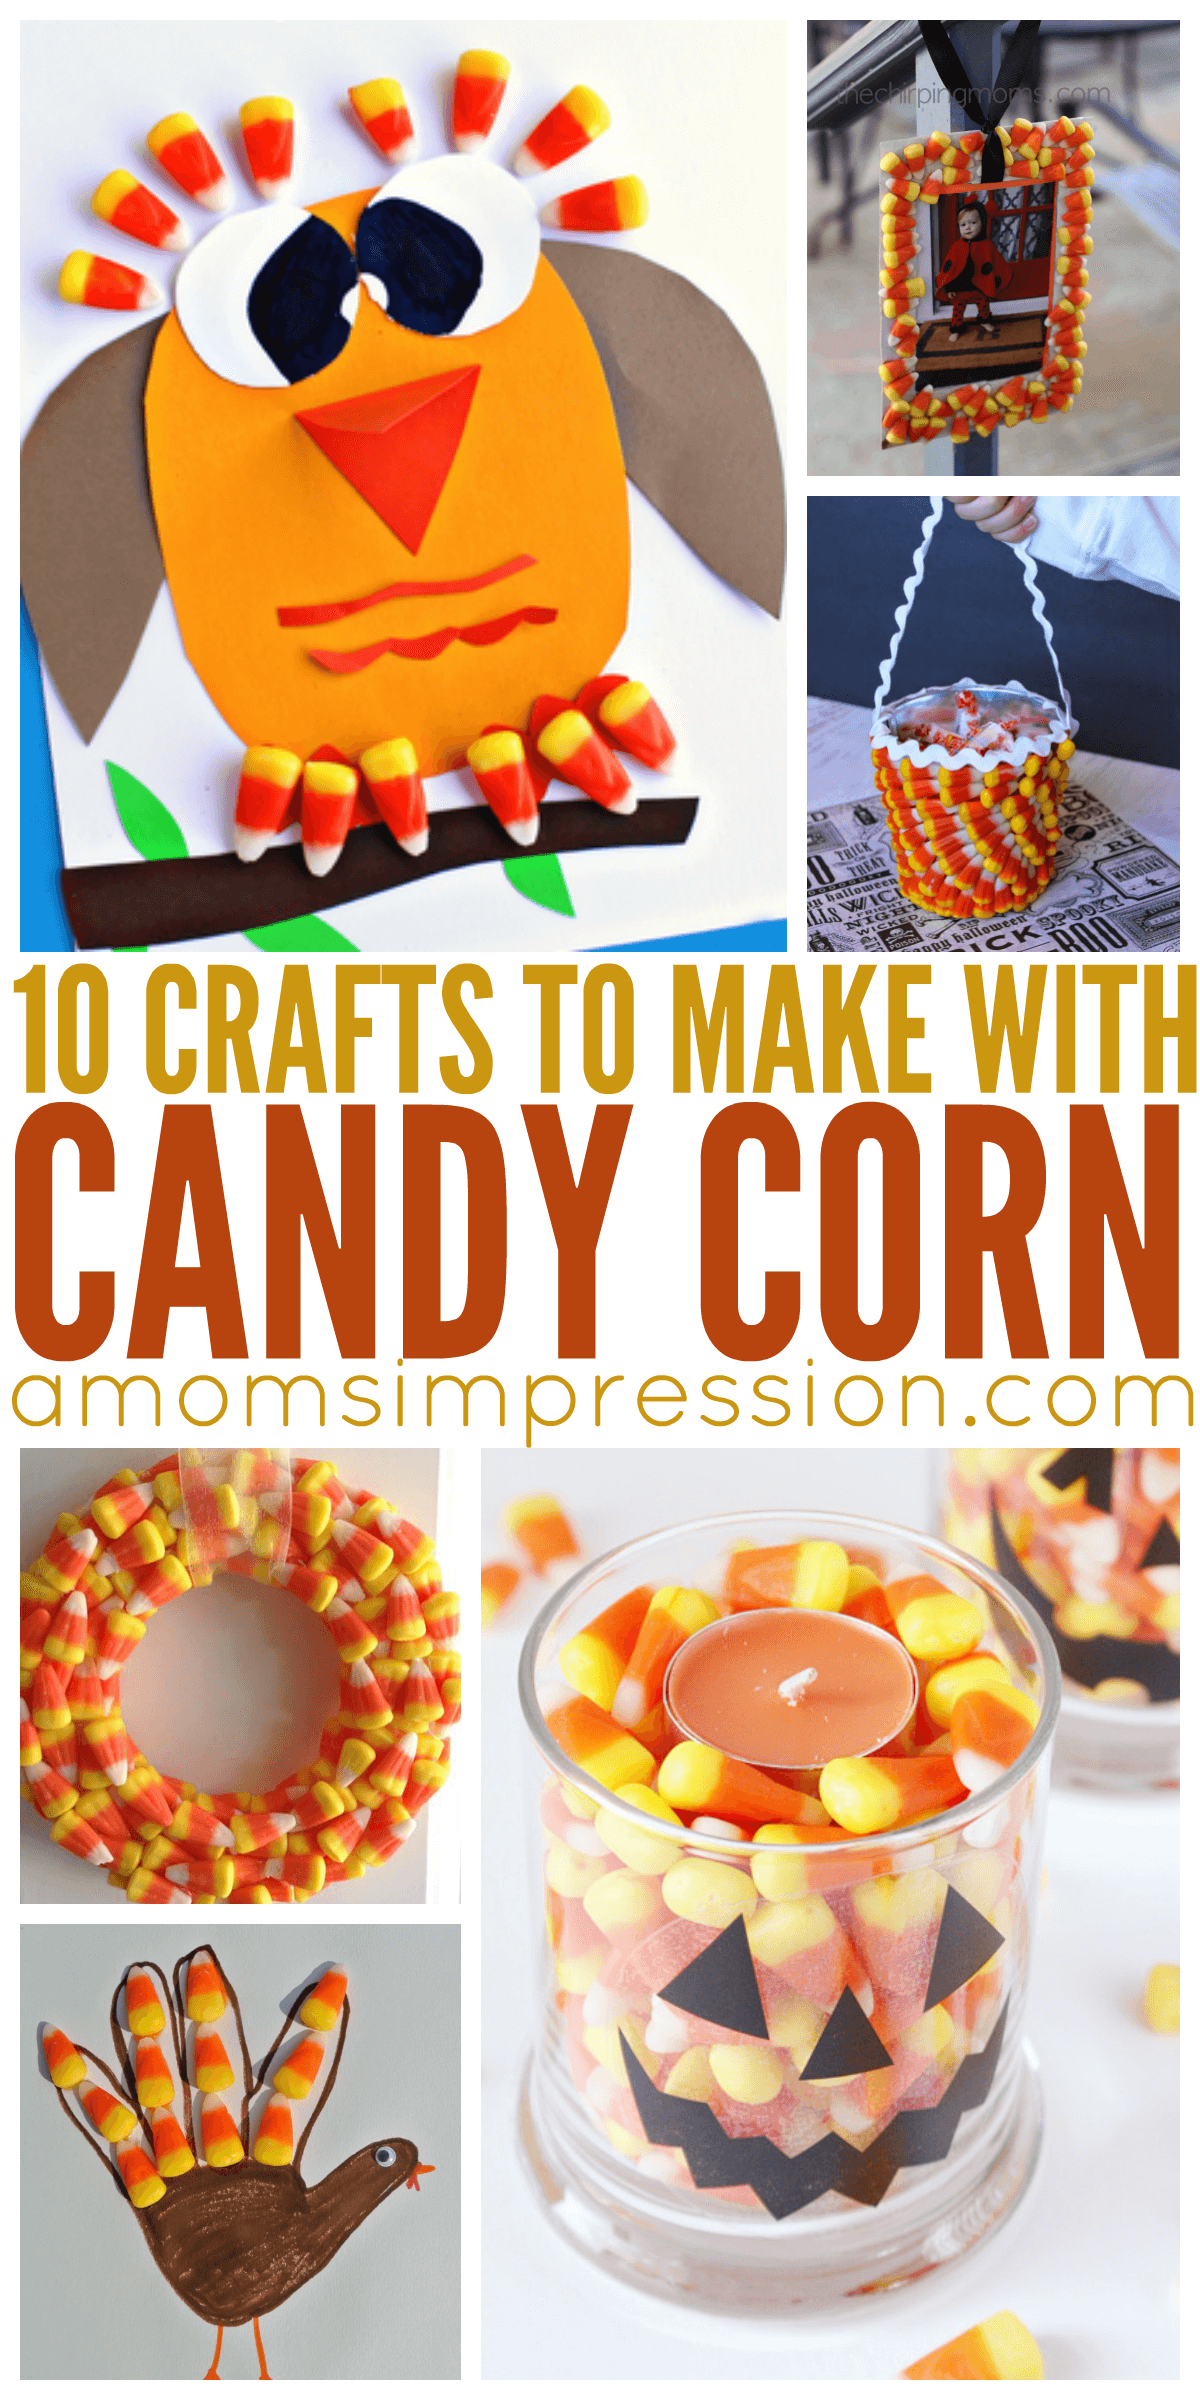 Do you love Candy Corn? Check out these DIY Candy Corn Crafts for kids or for your home. These ideas are perfect for fall and can be made with your kids as young as preschool.